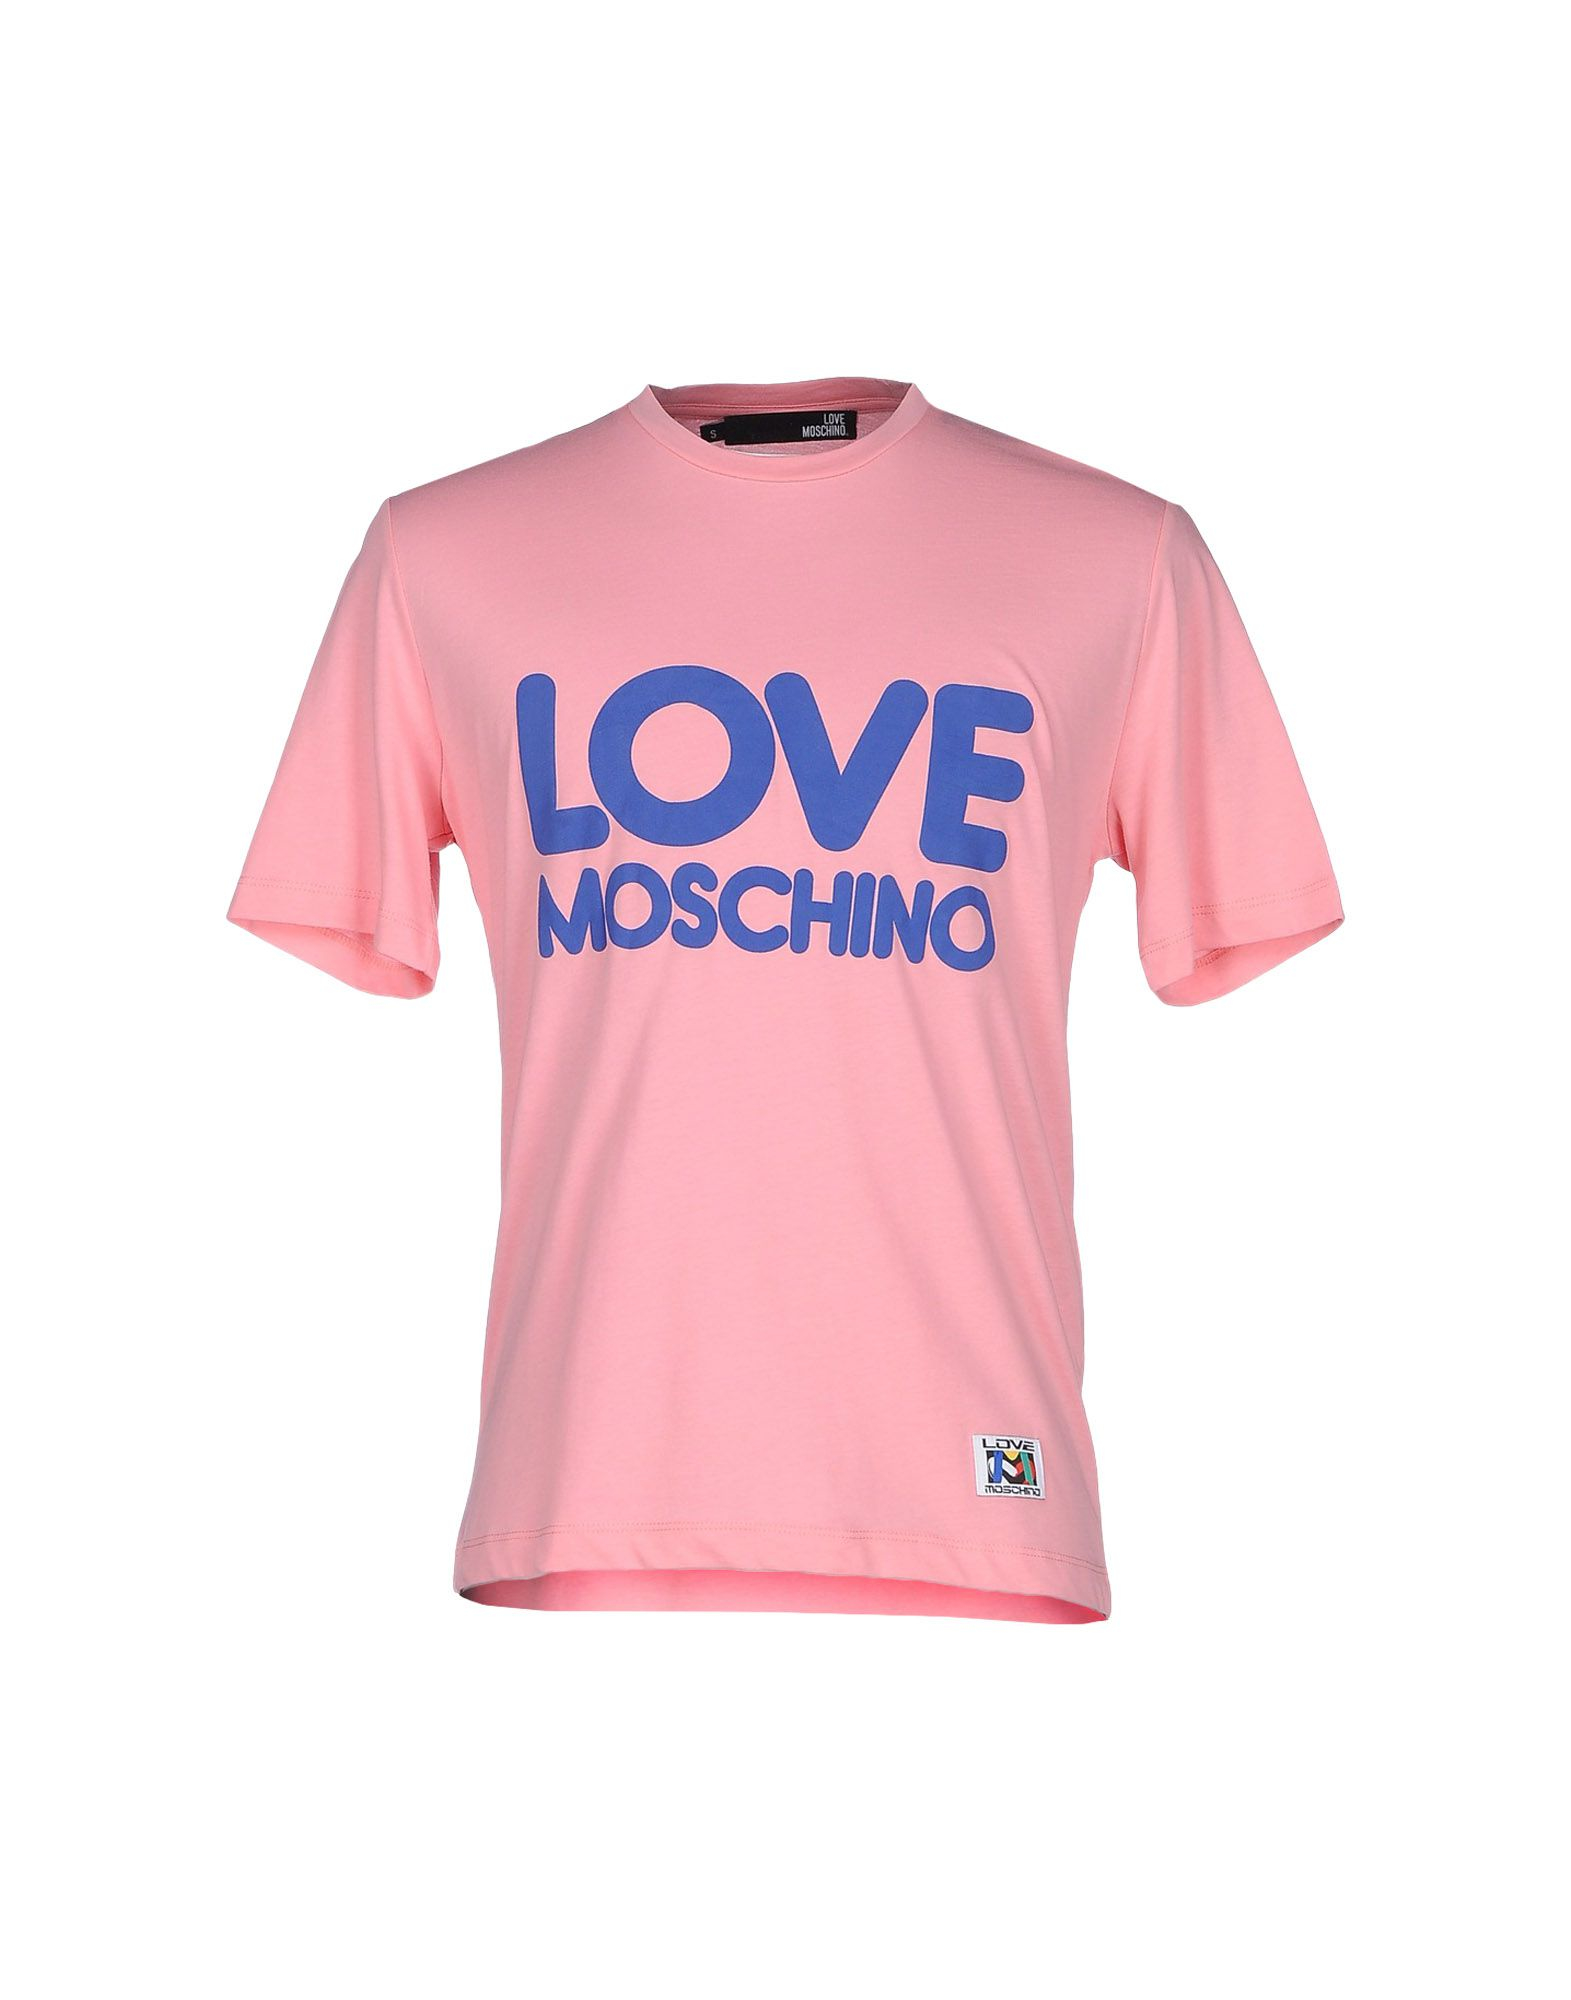 love moschino t shirt in pink for men lyst. Black Bedroom Furniture Sets. Home Design Ideas